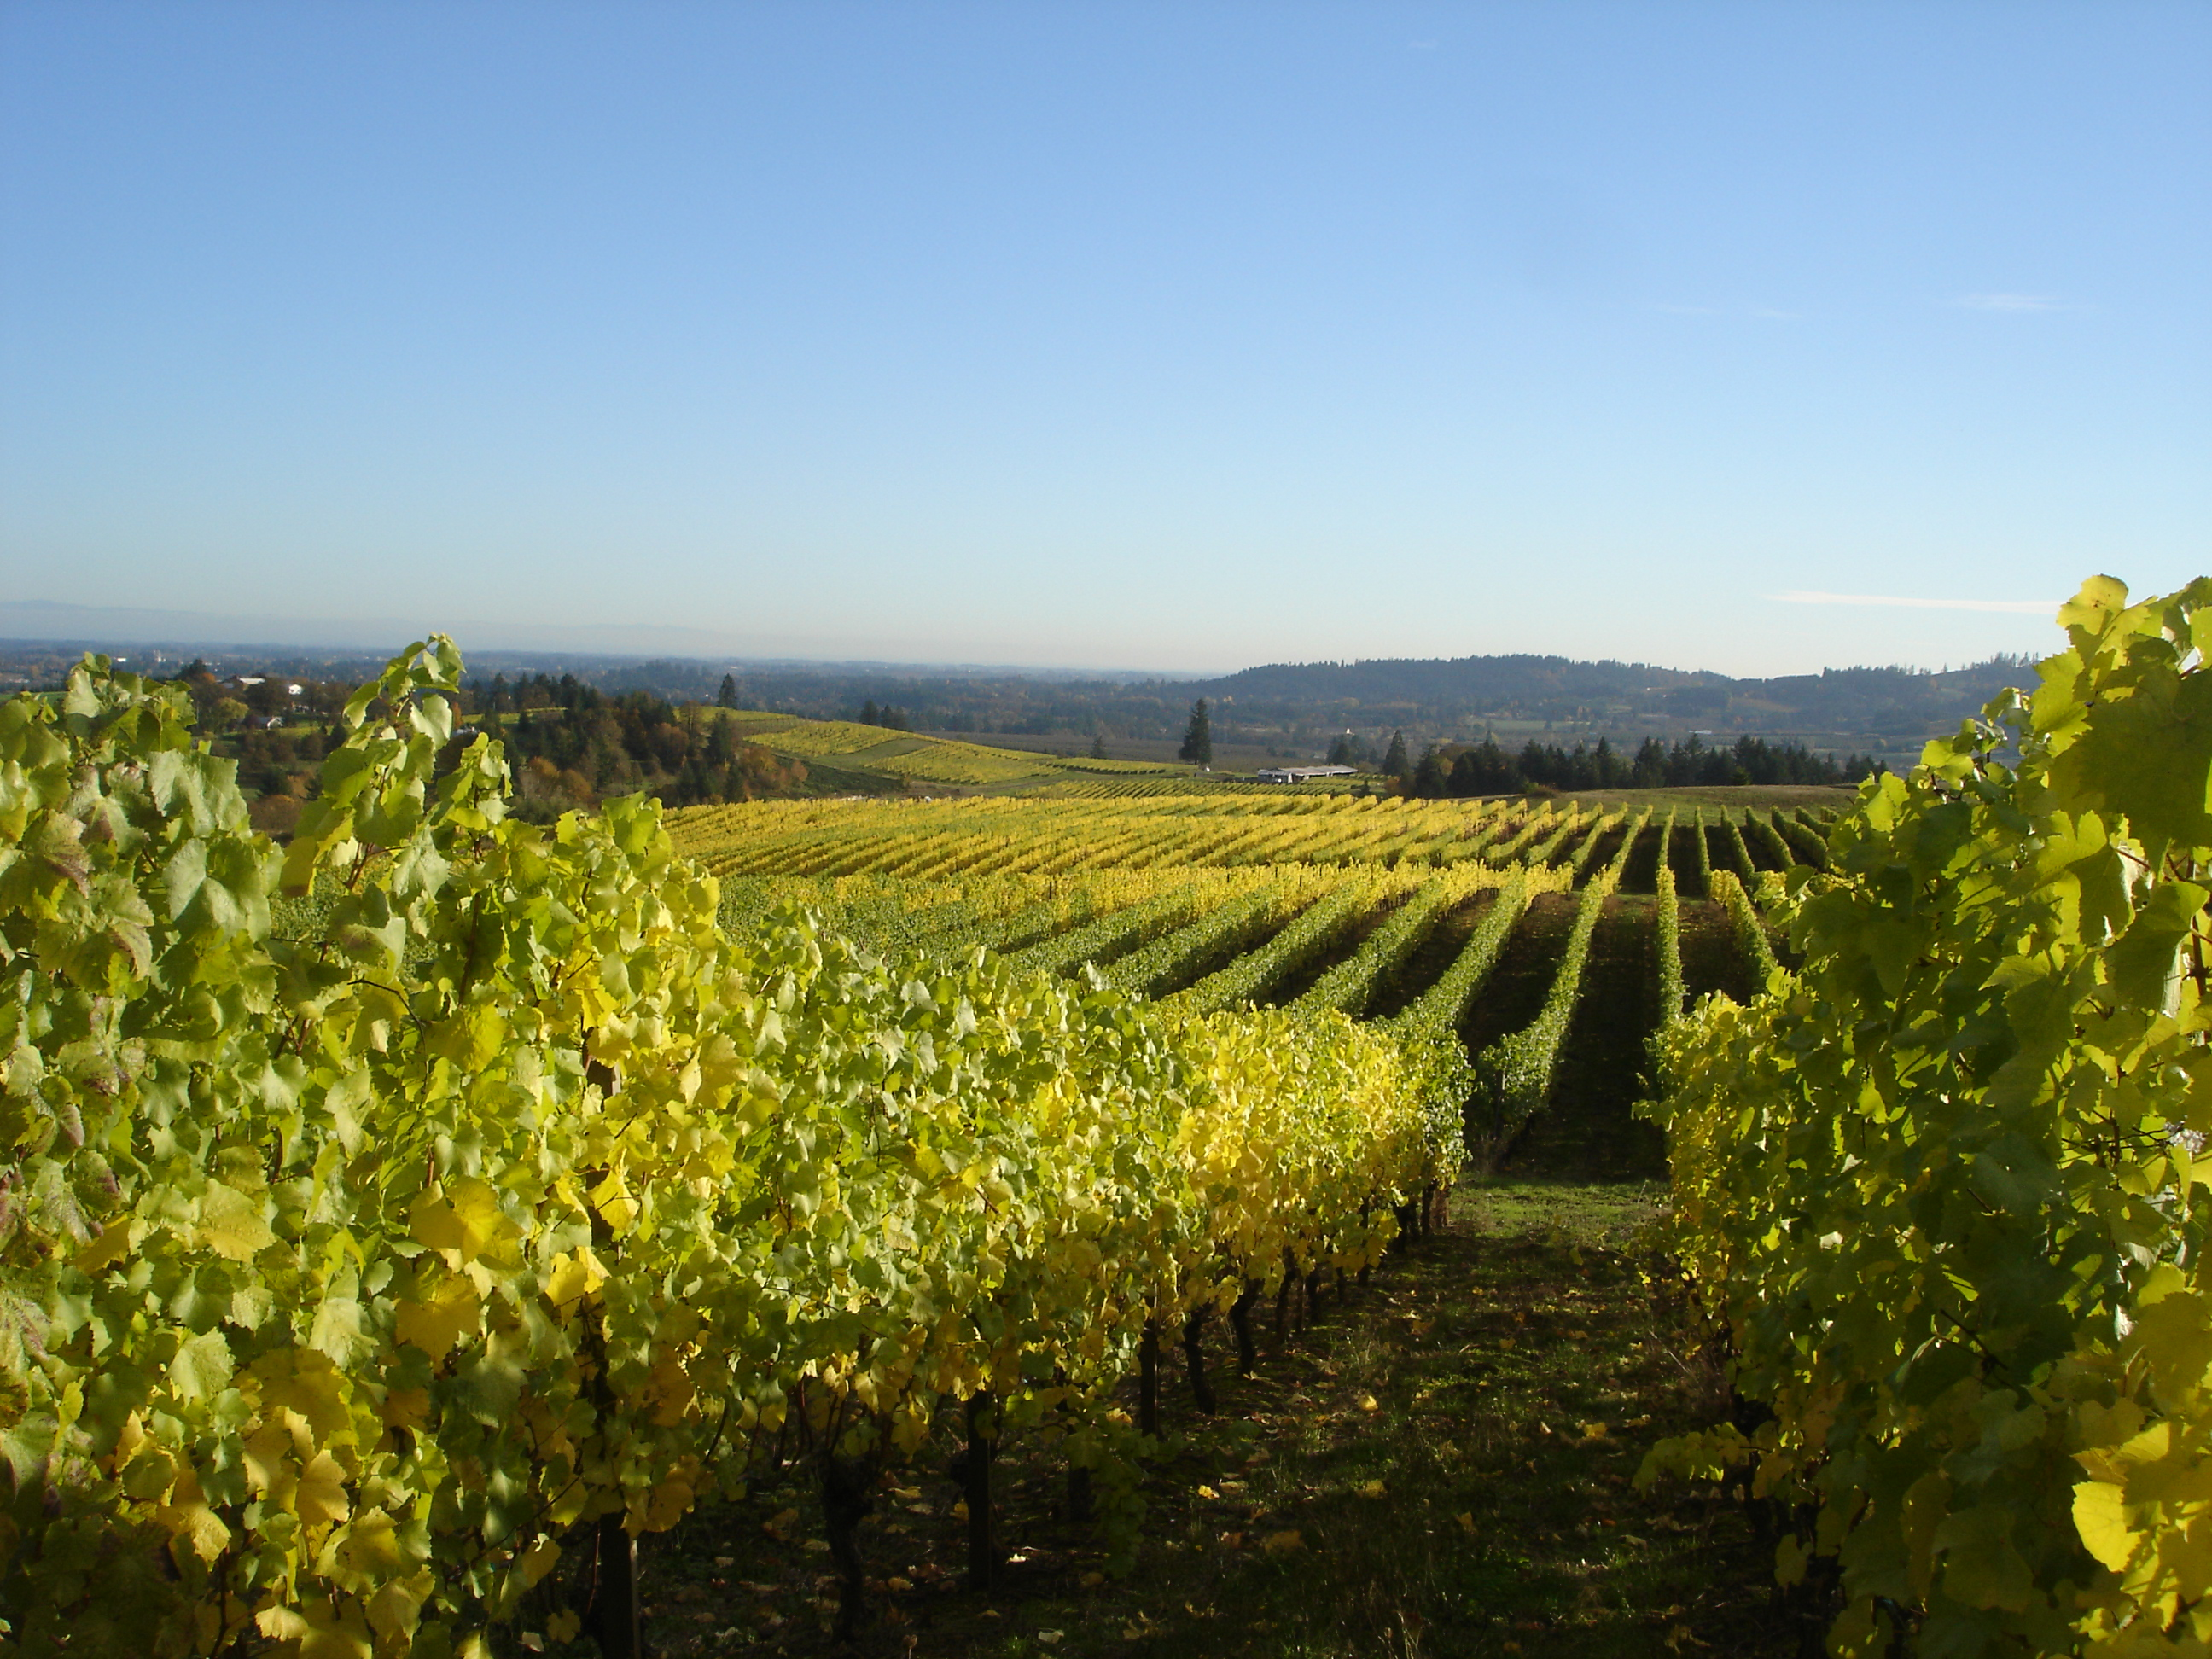 View south from Lia's Vineyard